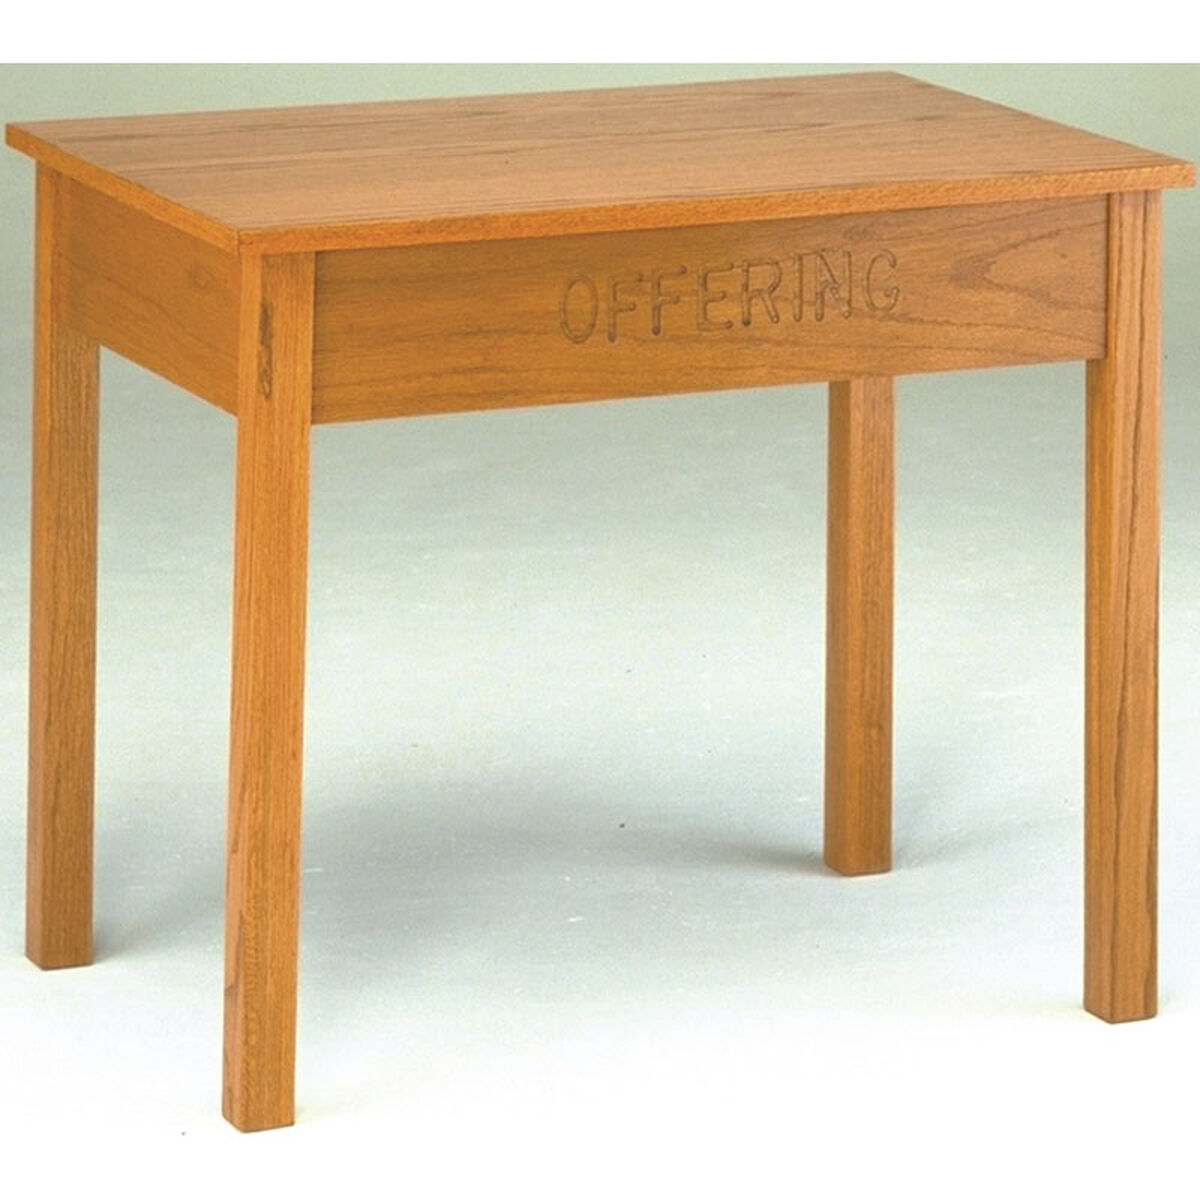 Our Stained Red Oak Offering Table With Storage Drawer Is On Now